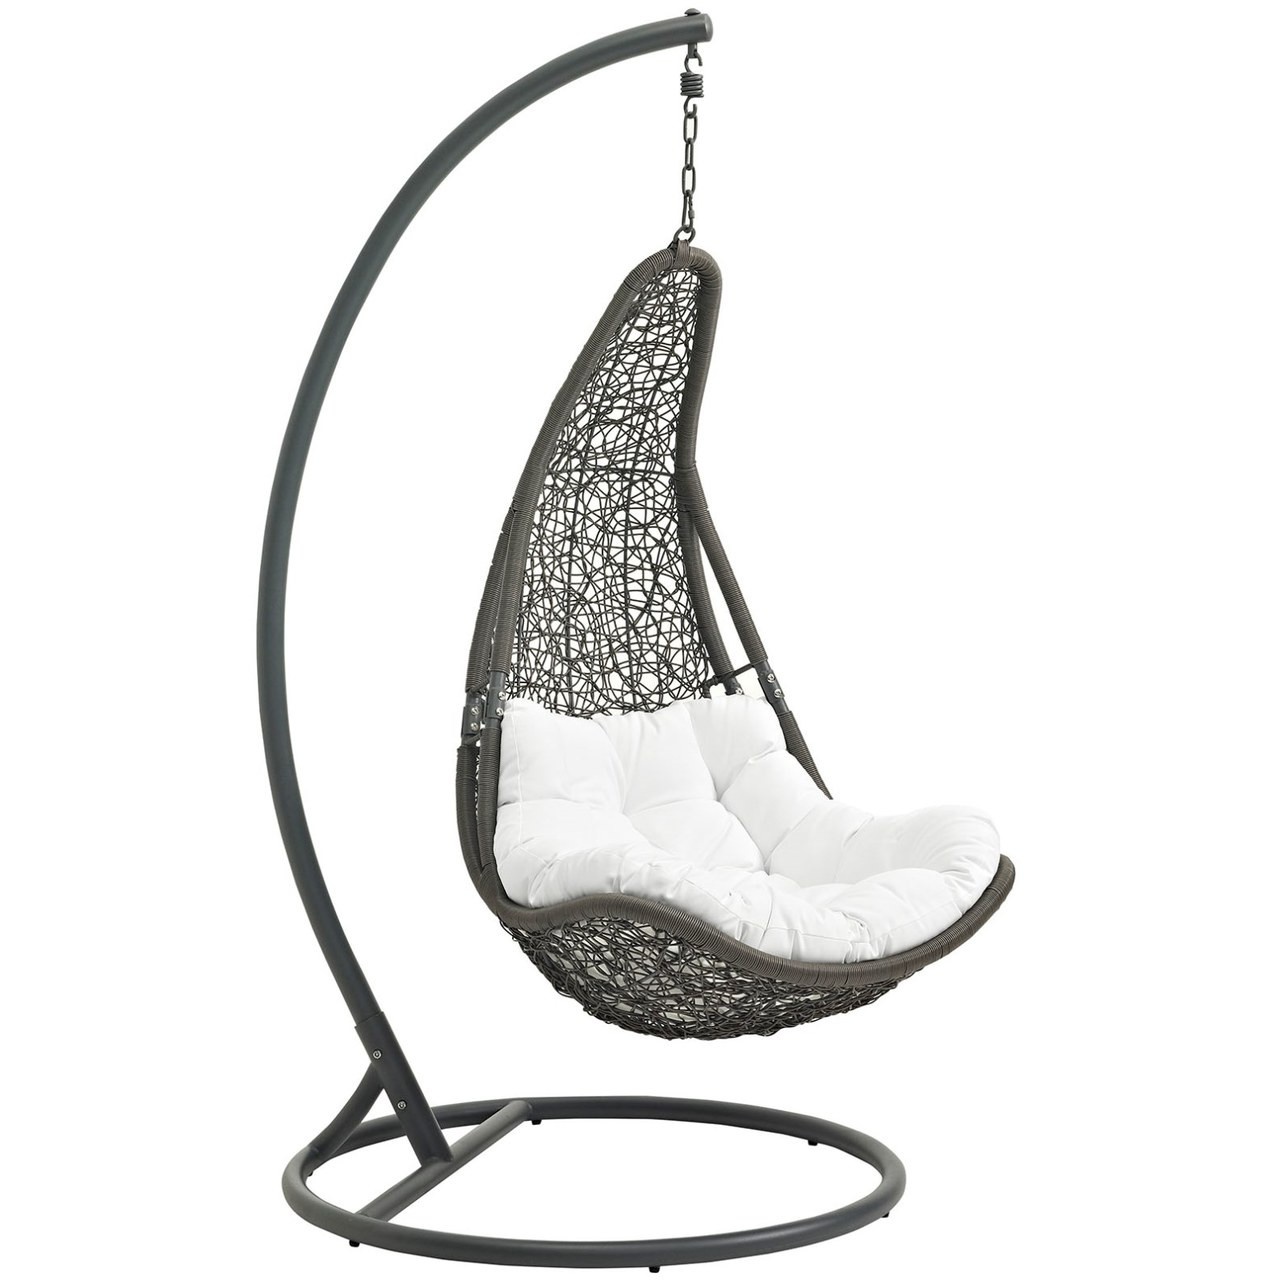 Swing Chair Stand Abate Outdoor Patio Swing Chair With Stand White Rattan 10910